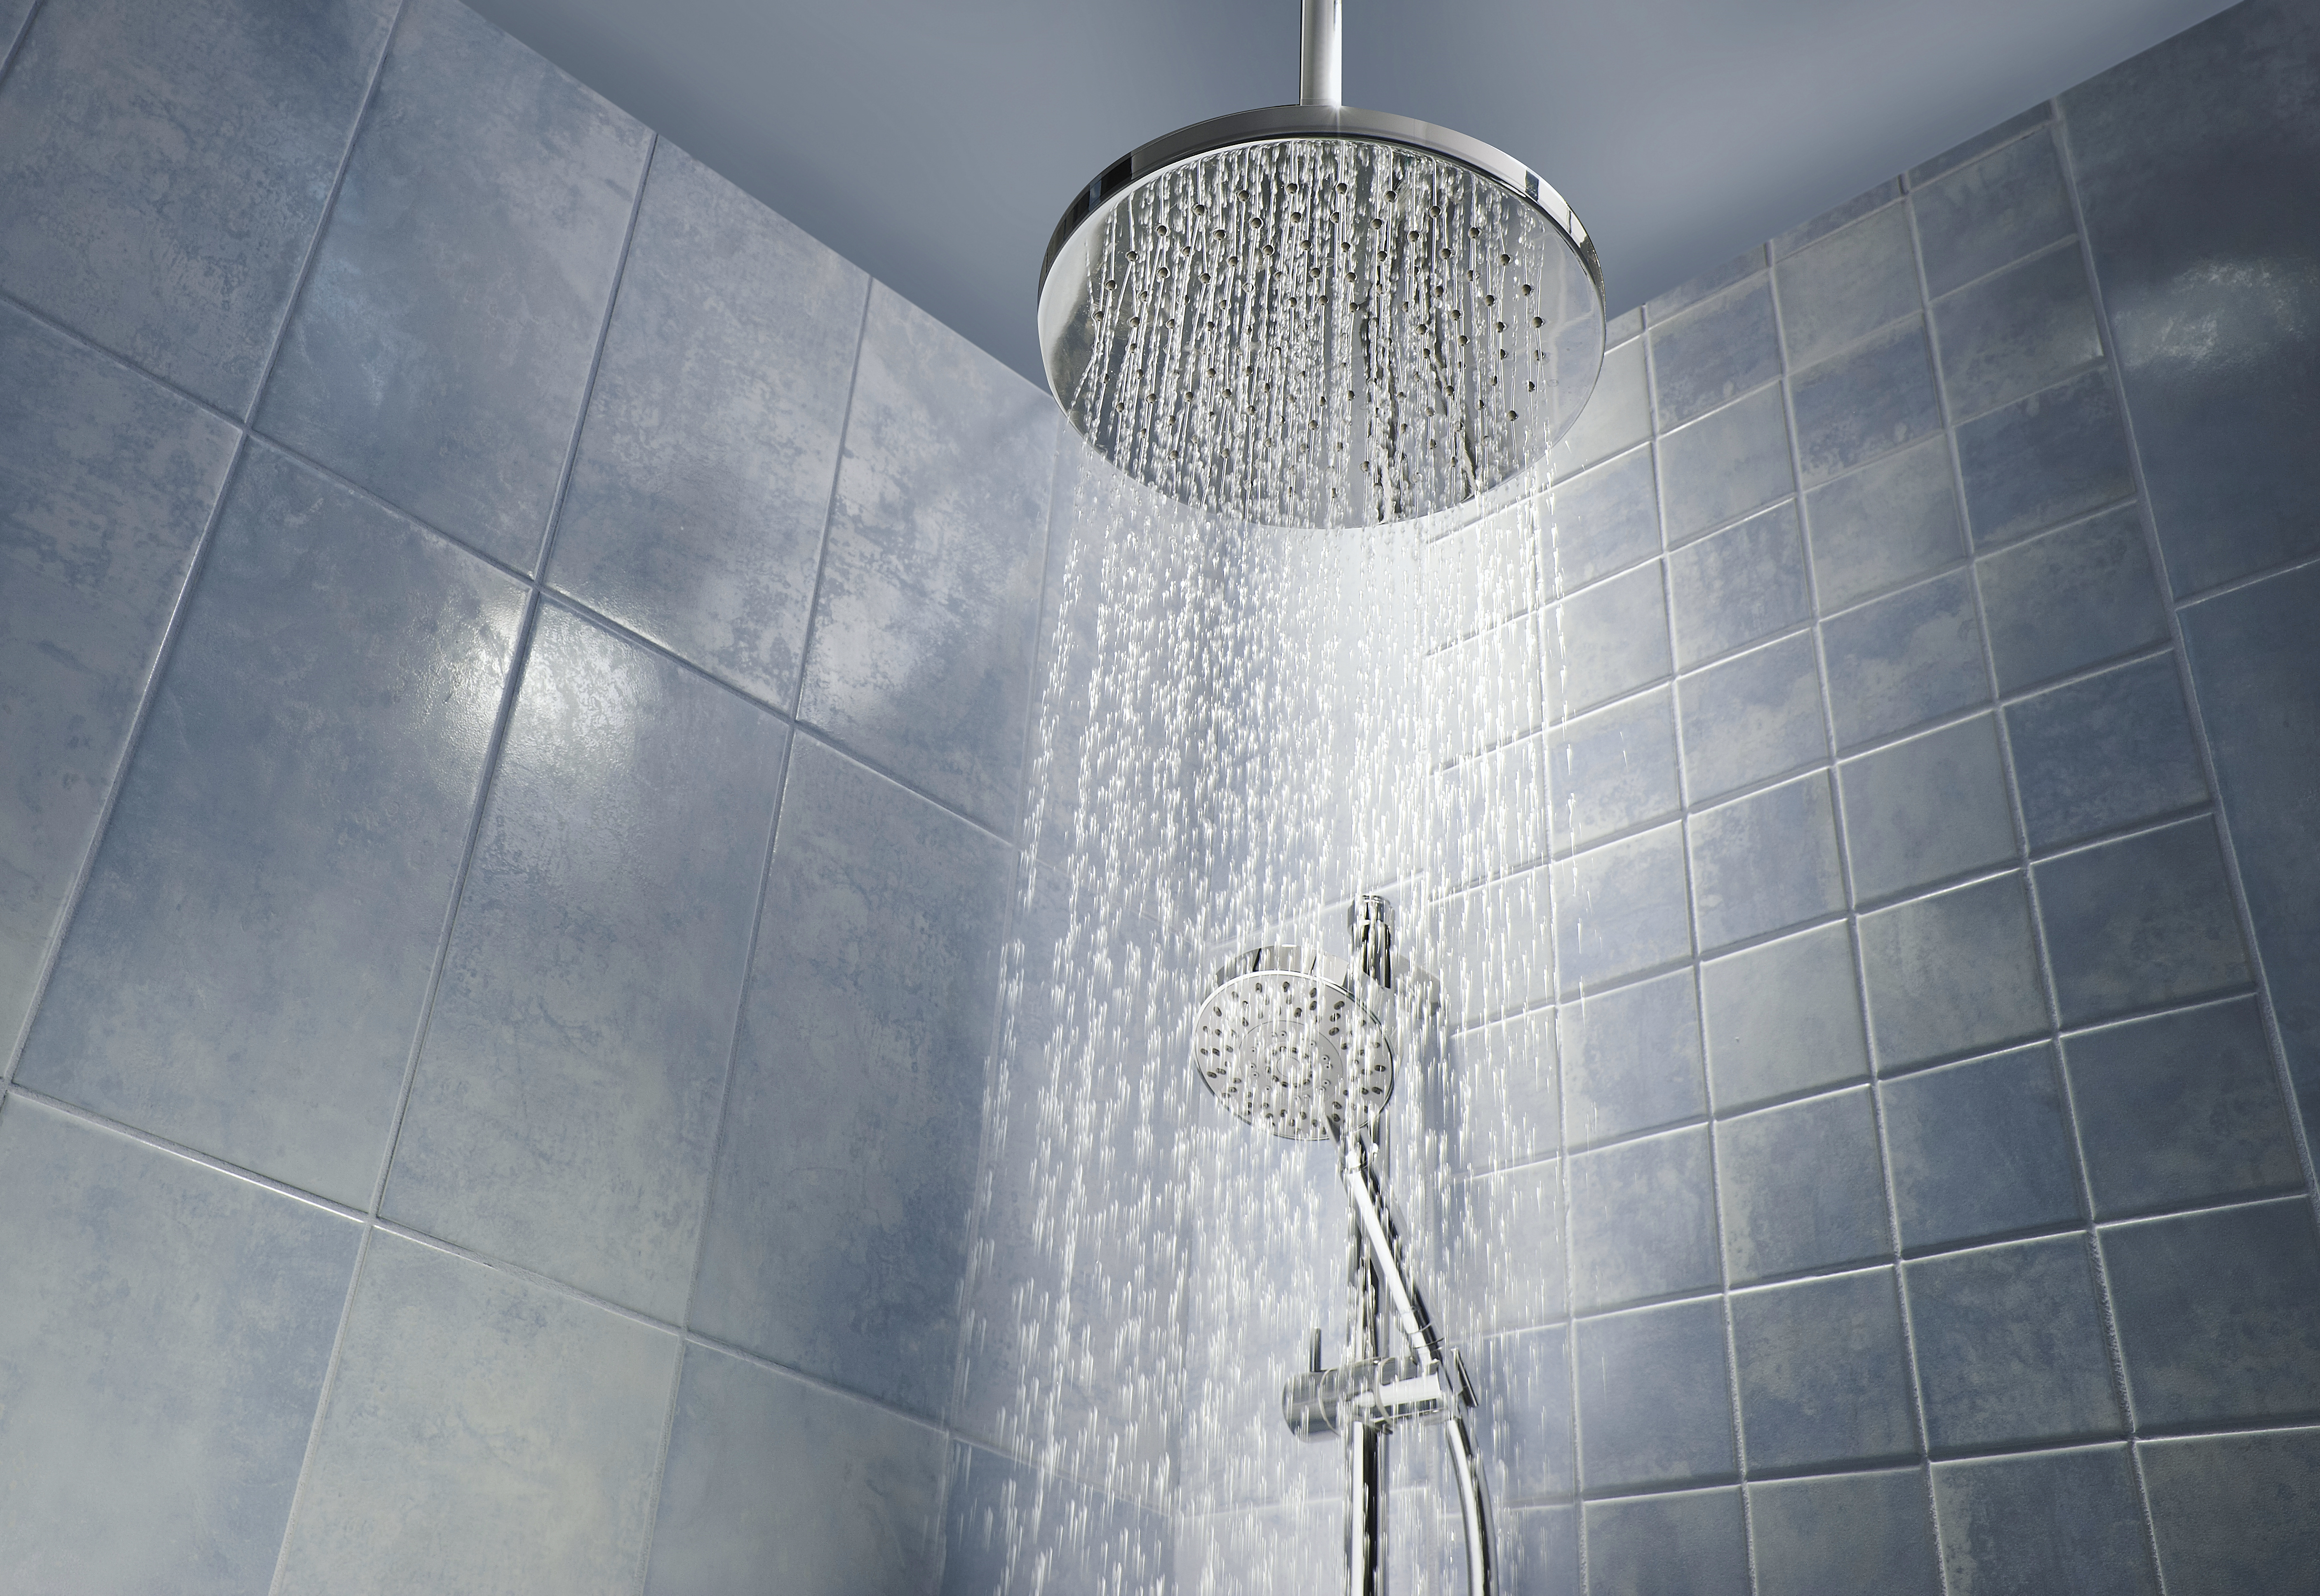 How Big Does A Doorless Shower Need To Be Home Guides